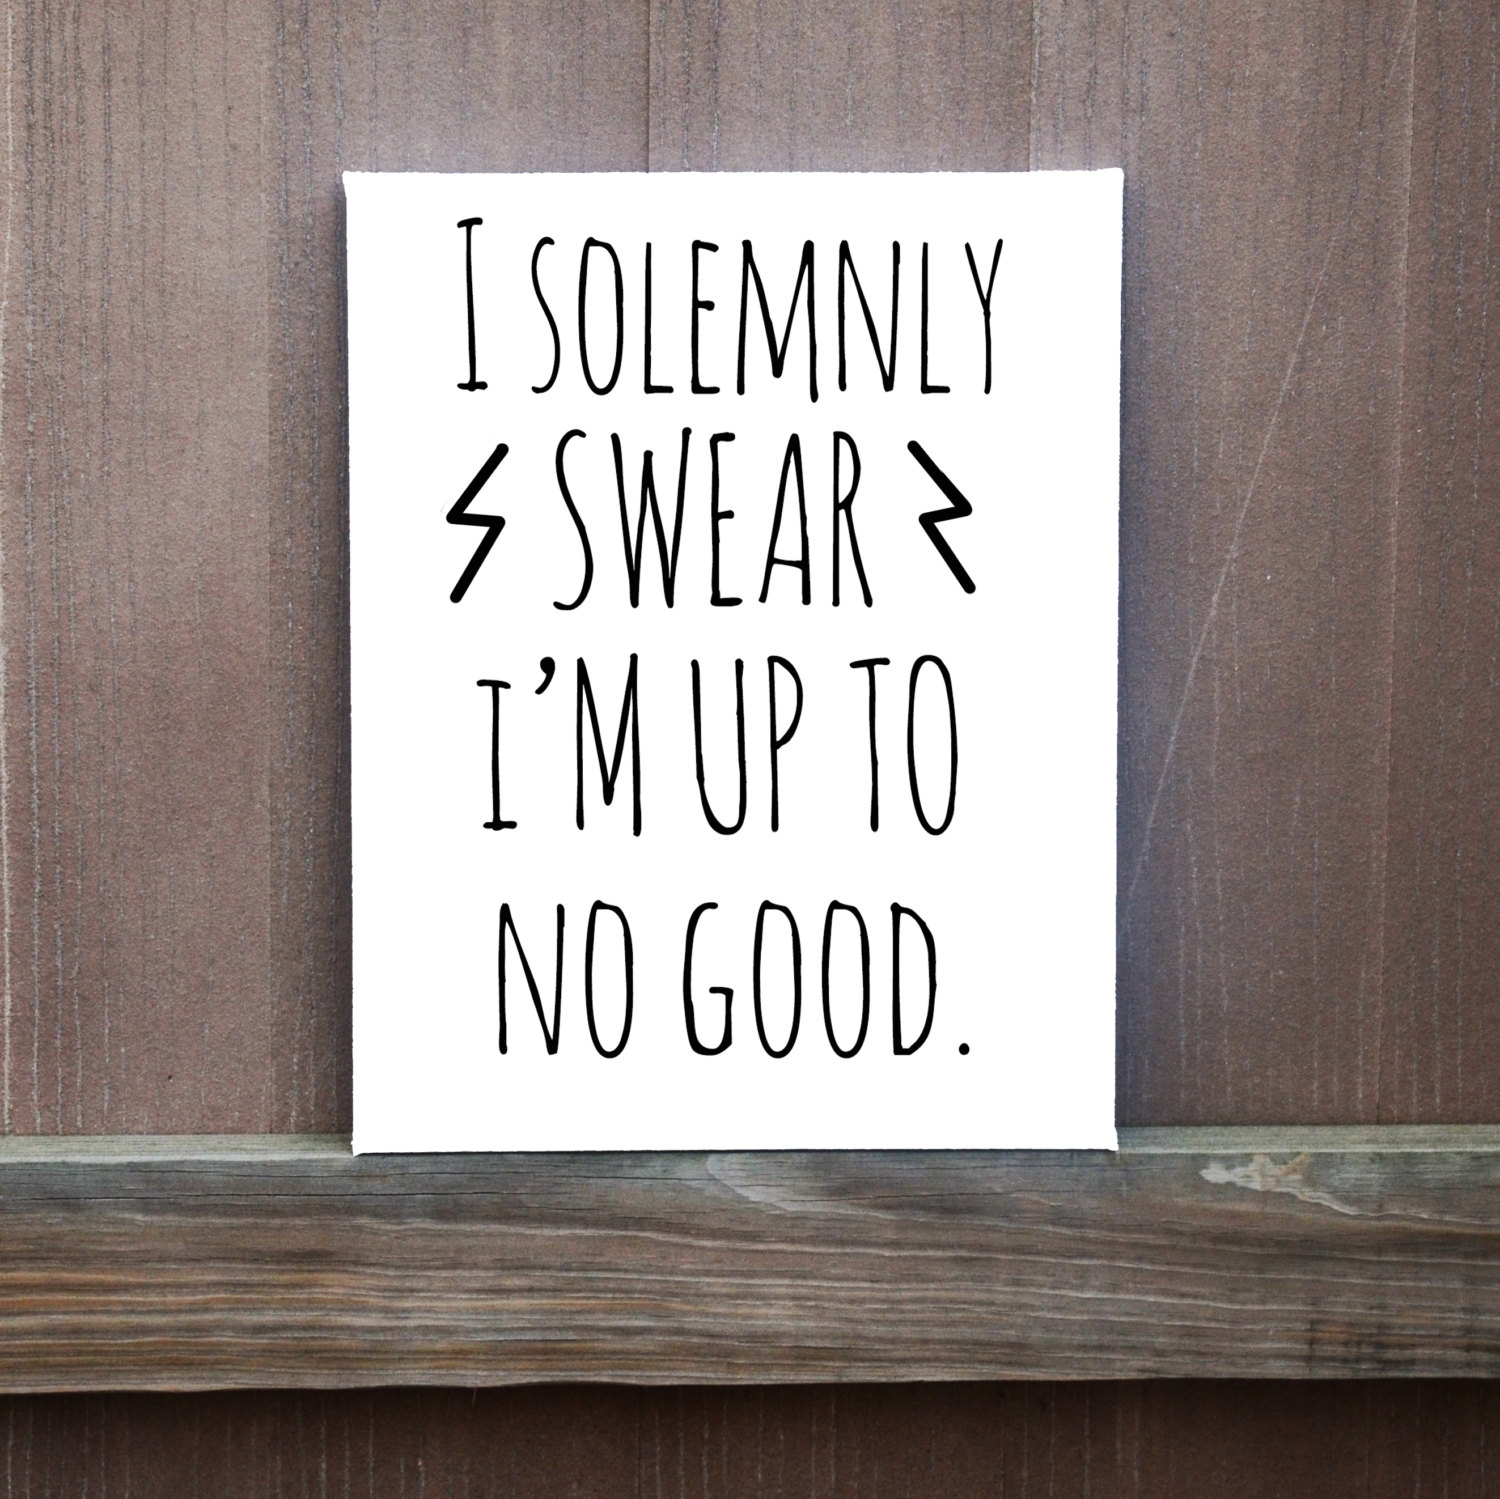 I Solemnly Swear I'm Up To No Good Hand Painted Canvas, Harry With Regard To Newest Custom Quote Canvas Wall Art (View 6 of 15)